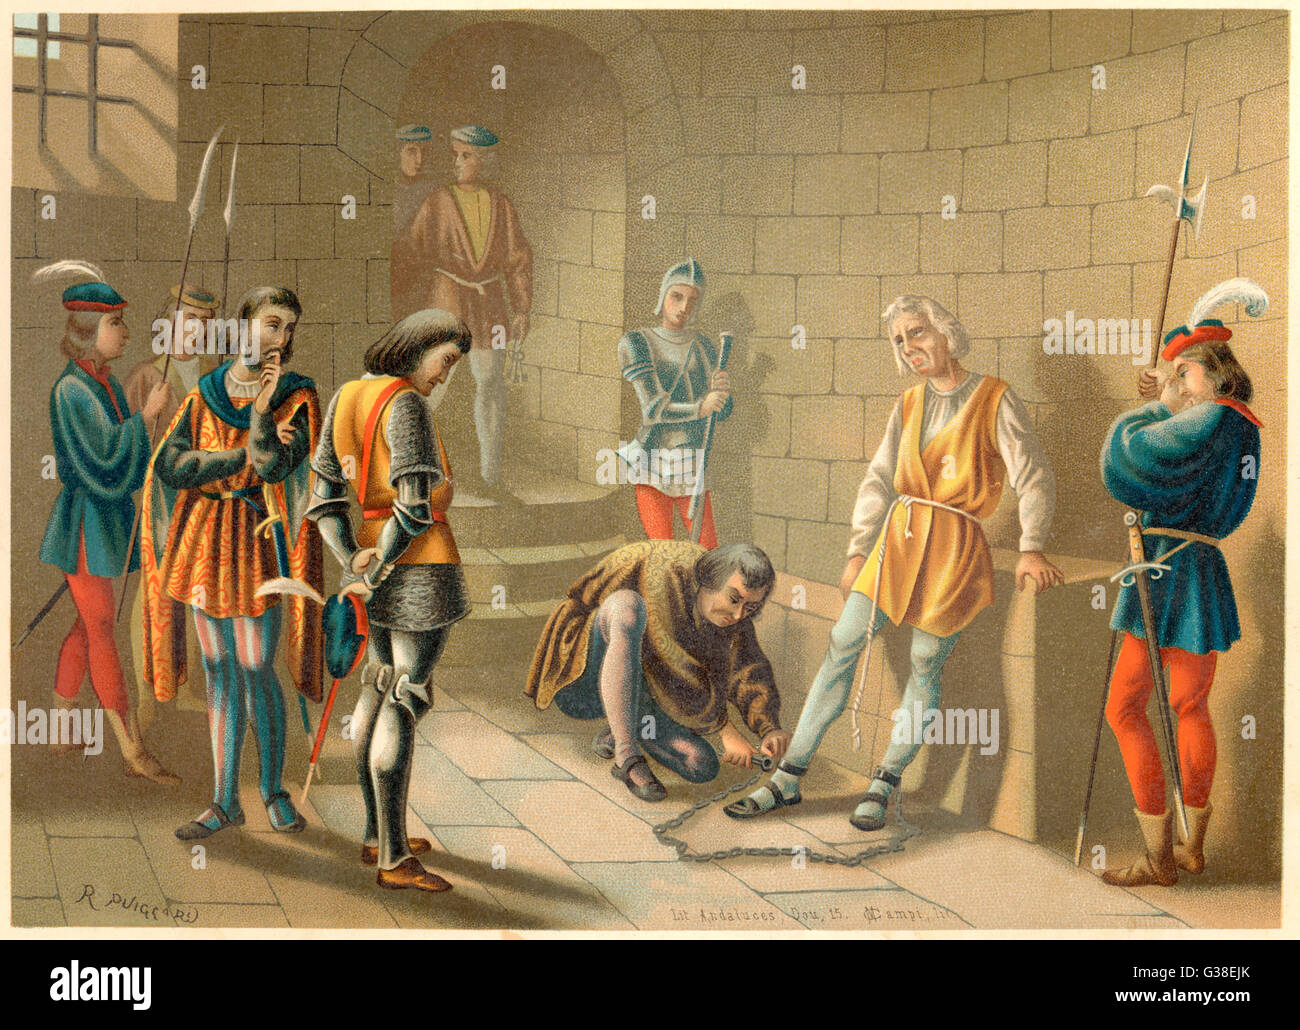 Columbus, arrested by the  governor, Bobadilla, for  insubordination.        Date: 15 November 1500 - Stock Image